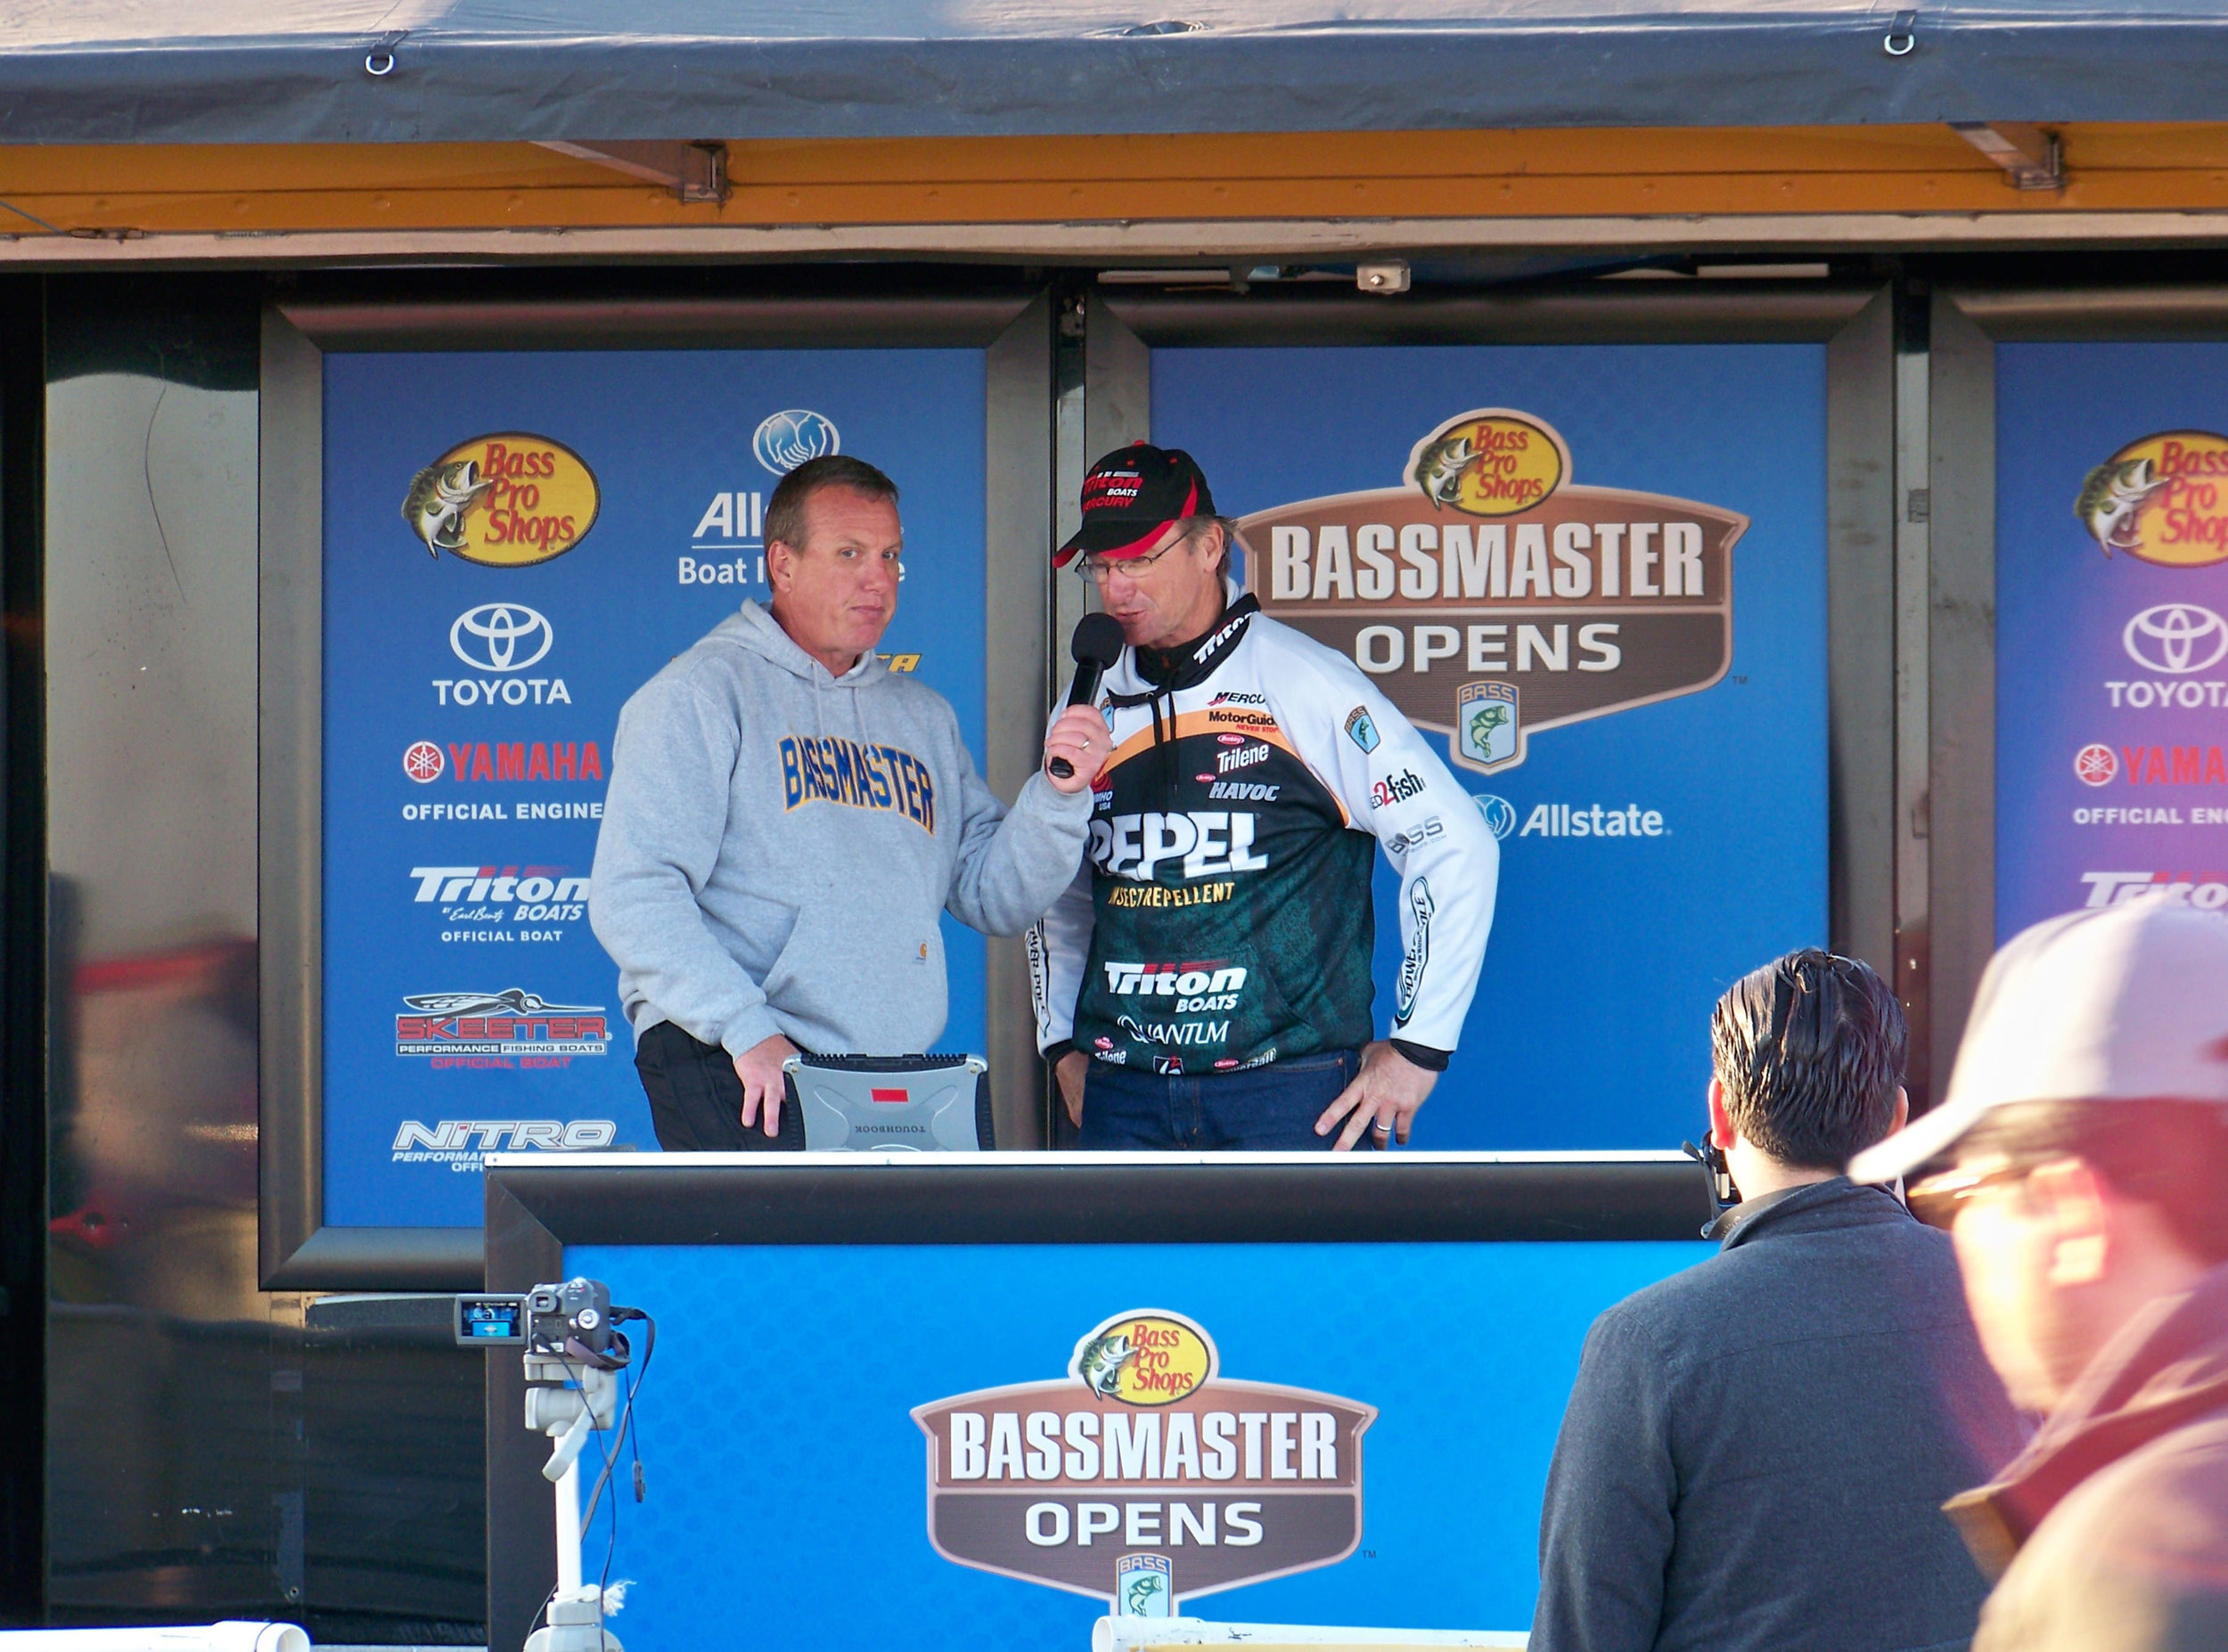 Elite Series Angler Gary Klein Re-capping Day Two with T.D. Chris Bowes